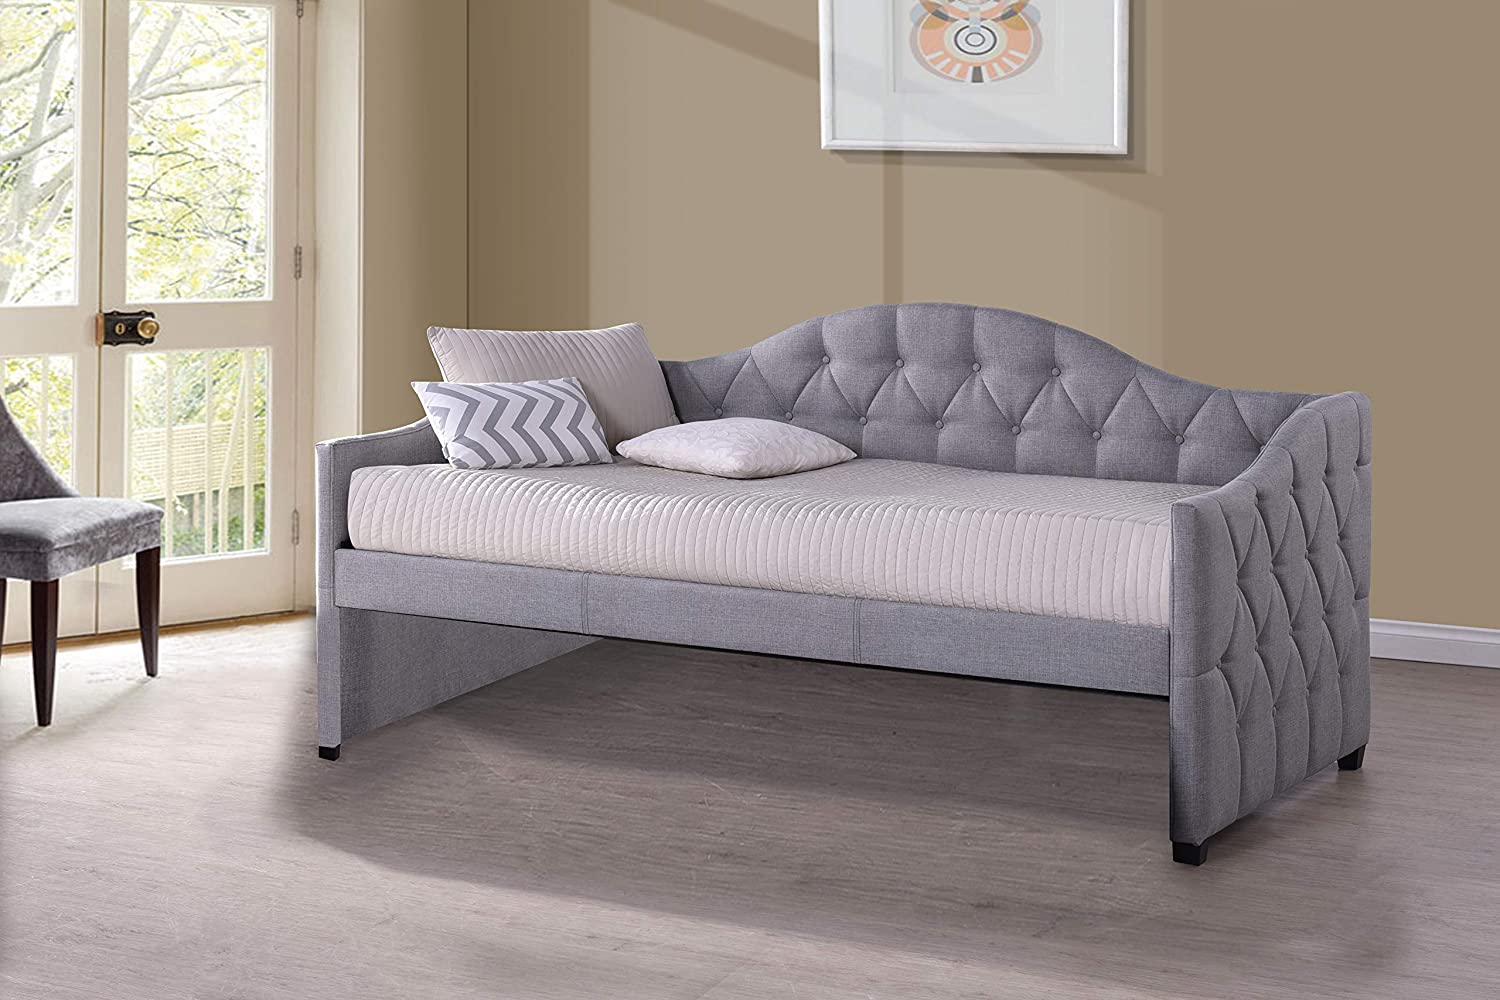 Hillsdale Furniture Jamie Tufted Daybed, Gray